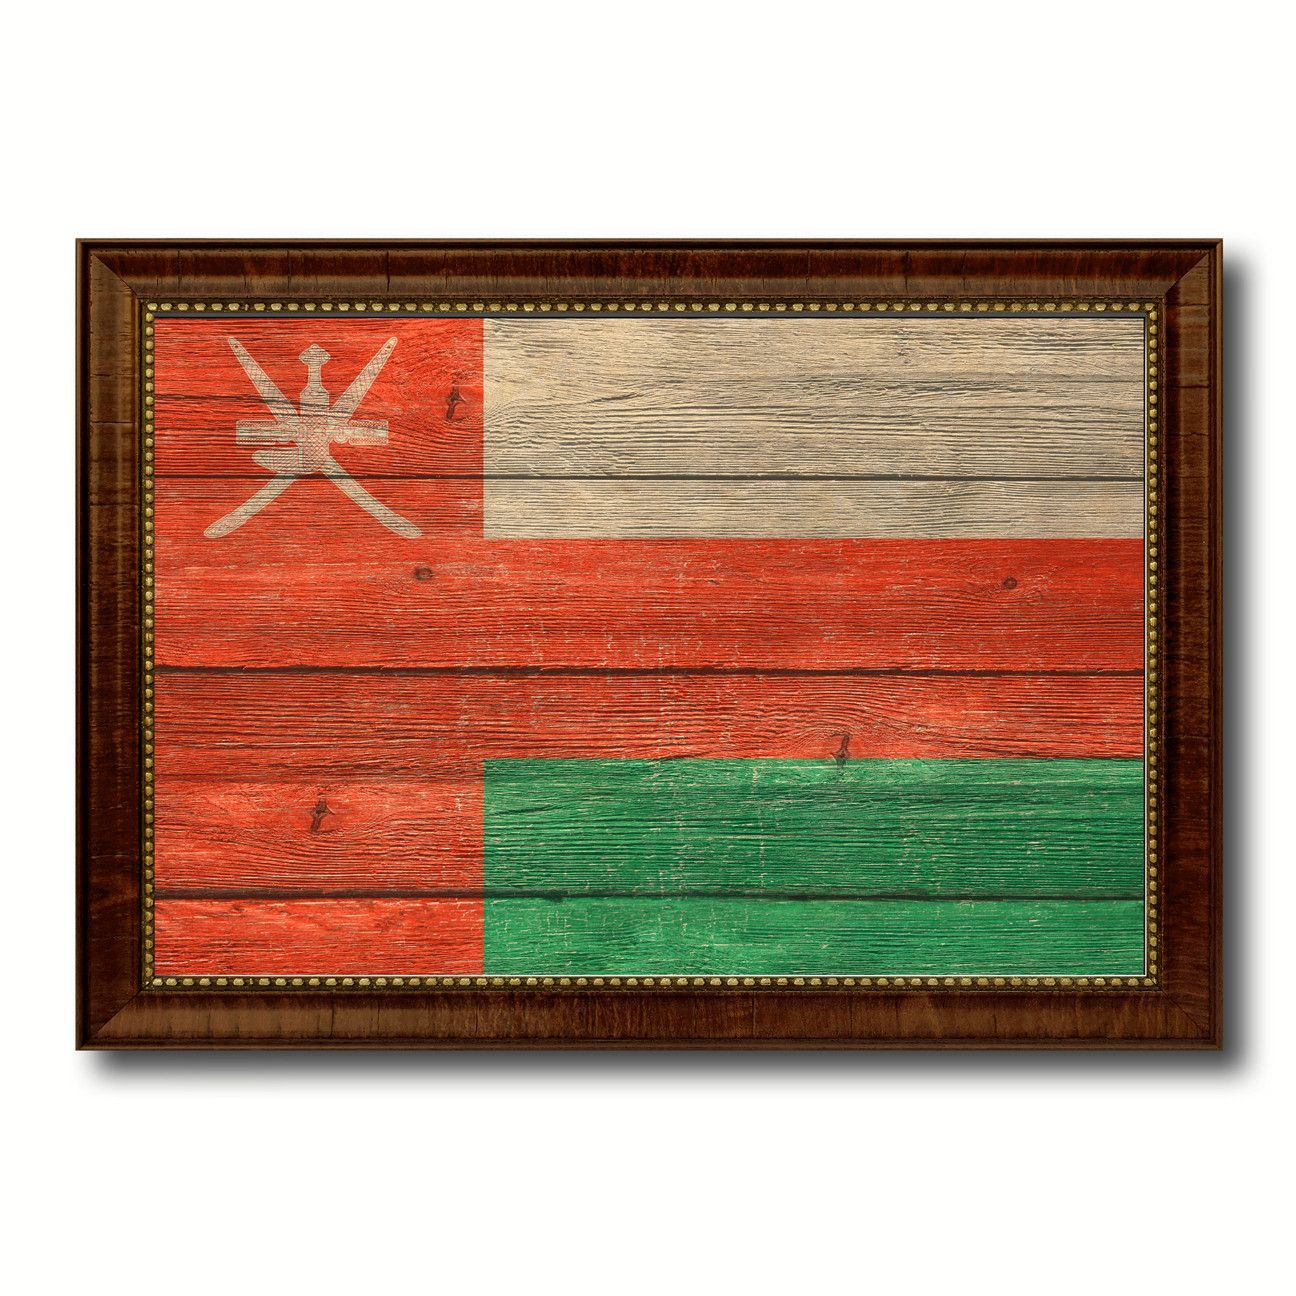 Oman Country Flag Texture Canvas Print, Custom Frame Home Decor Gift Ideas Wall Decoration